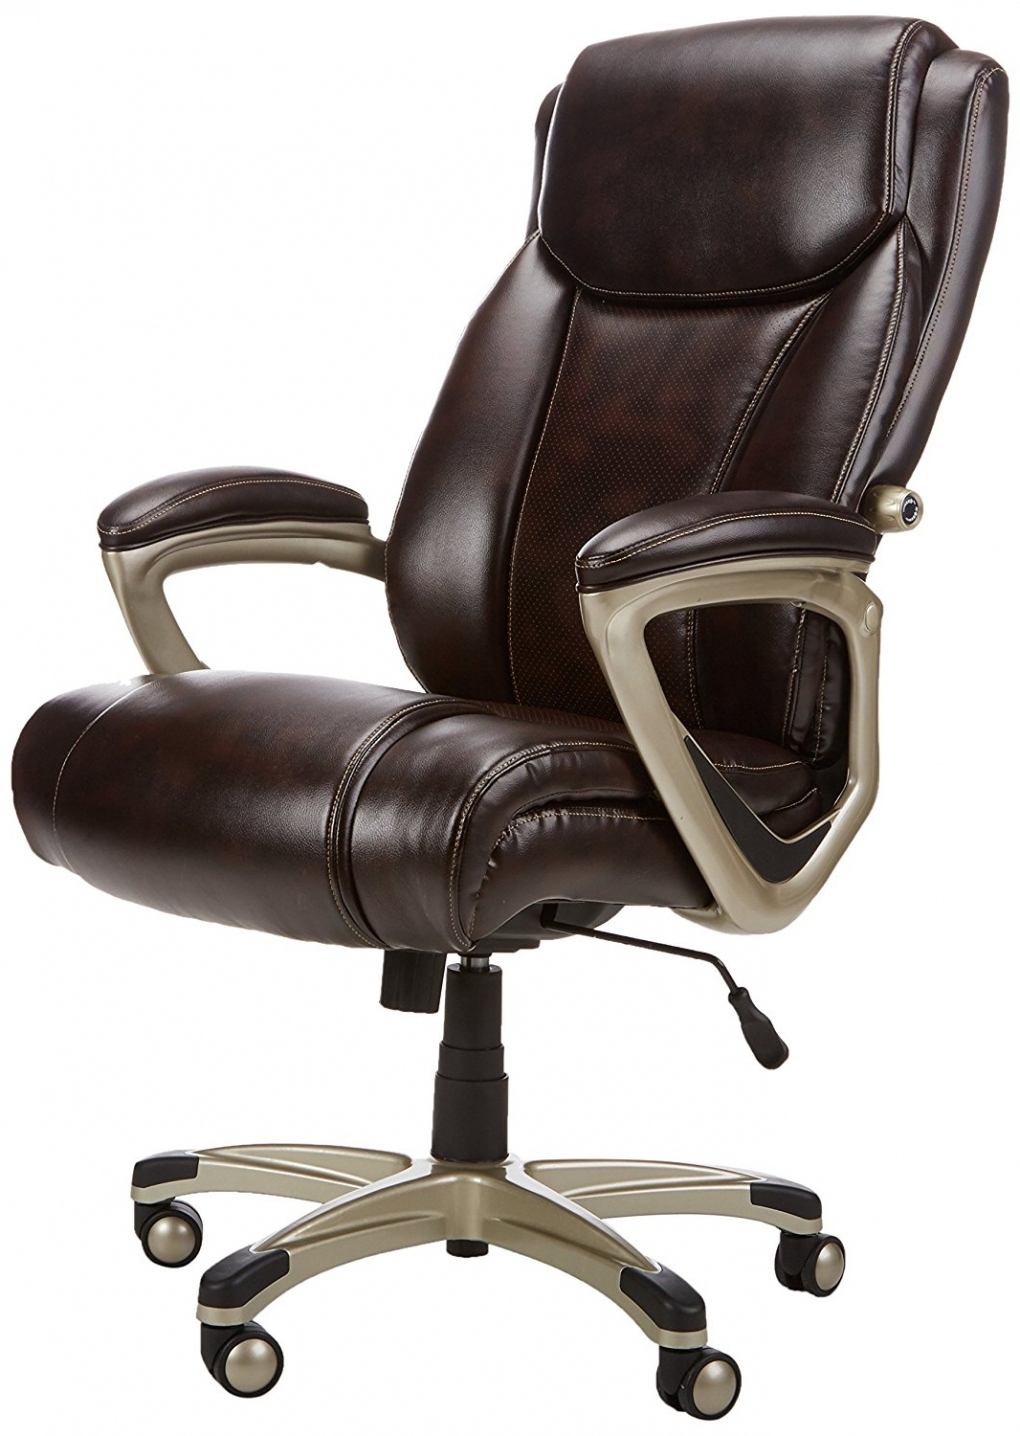 Chair : Executive Leather Office Chairs Best Office Desk Chair Regarding Most Up To Date Verona Cream Executive Leather Office Chairs (View 16 of 20)